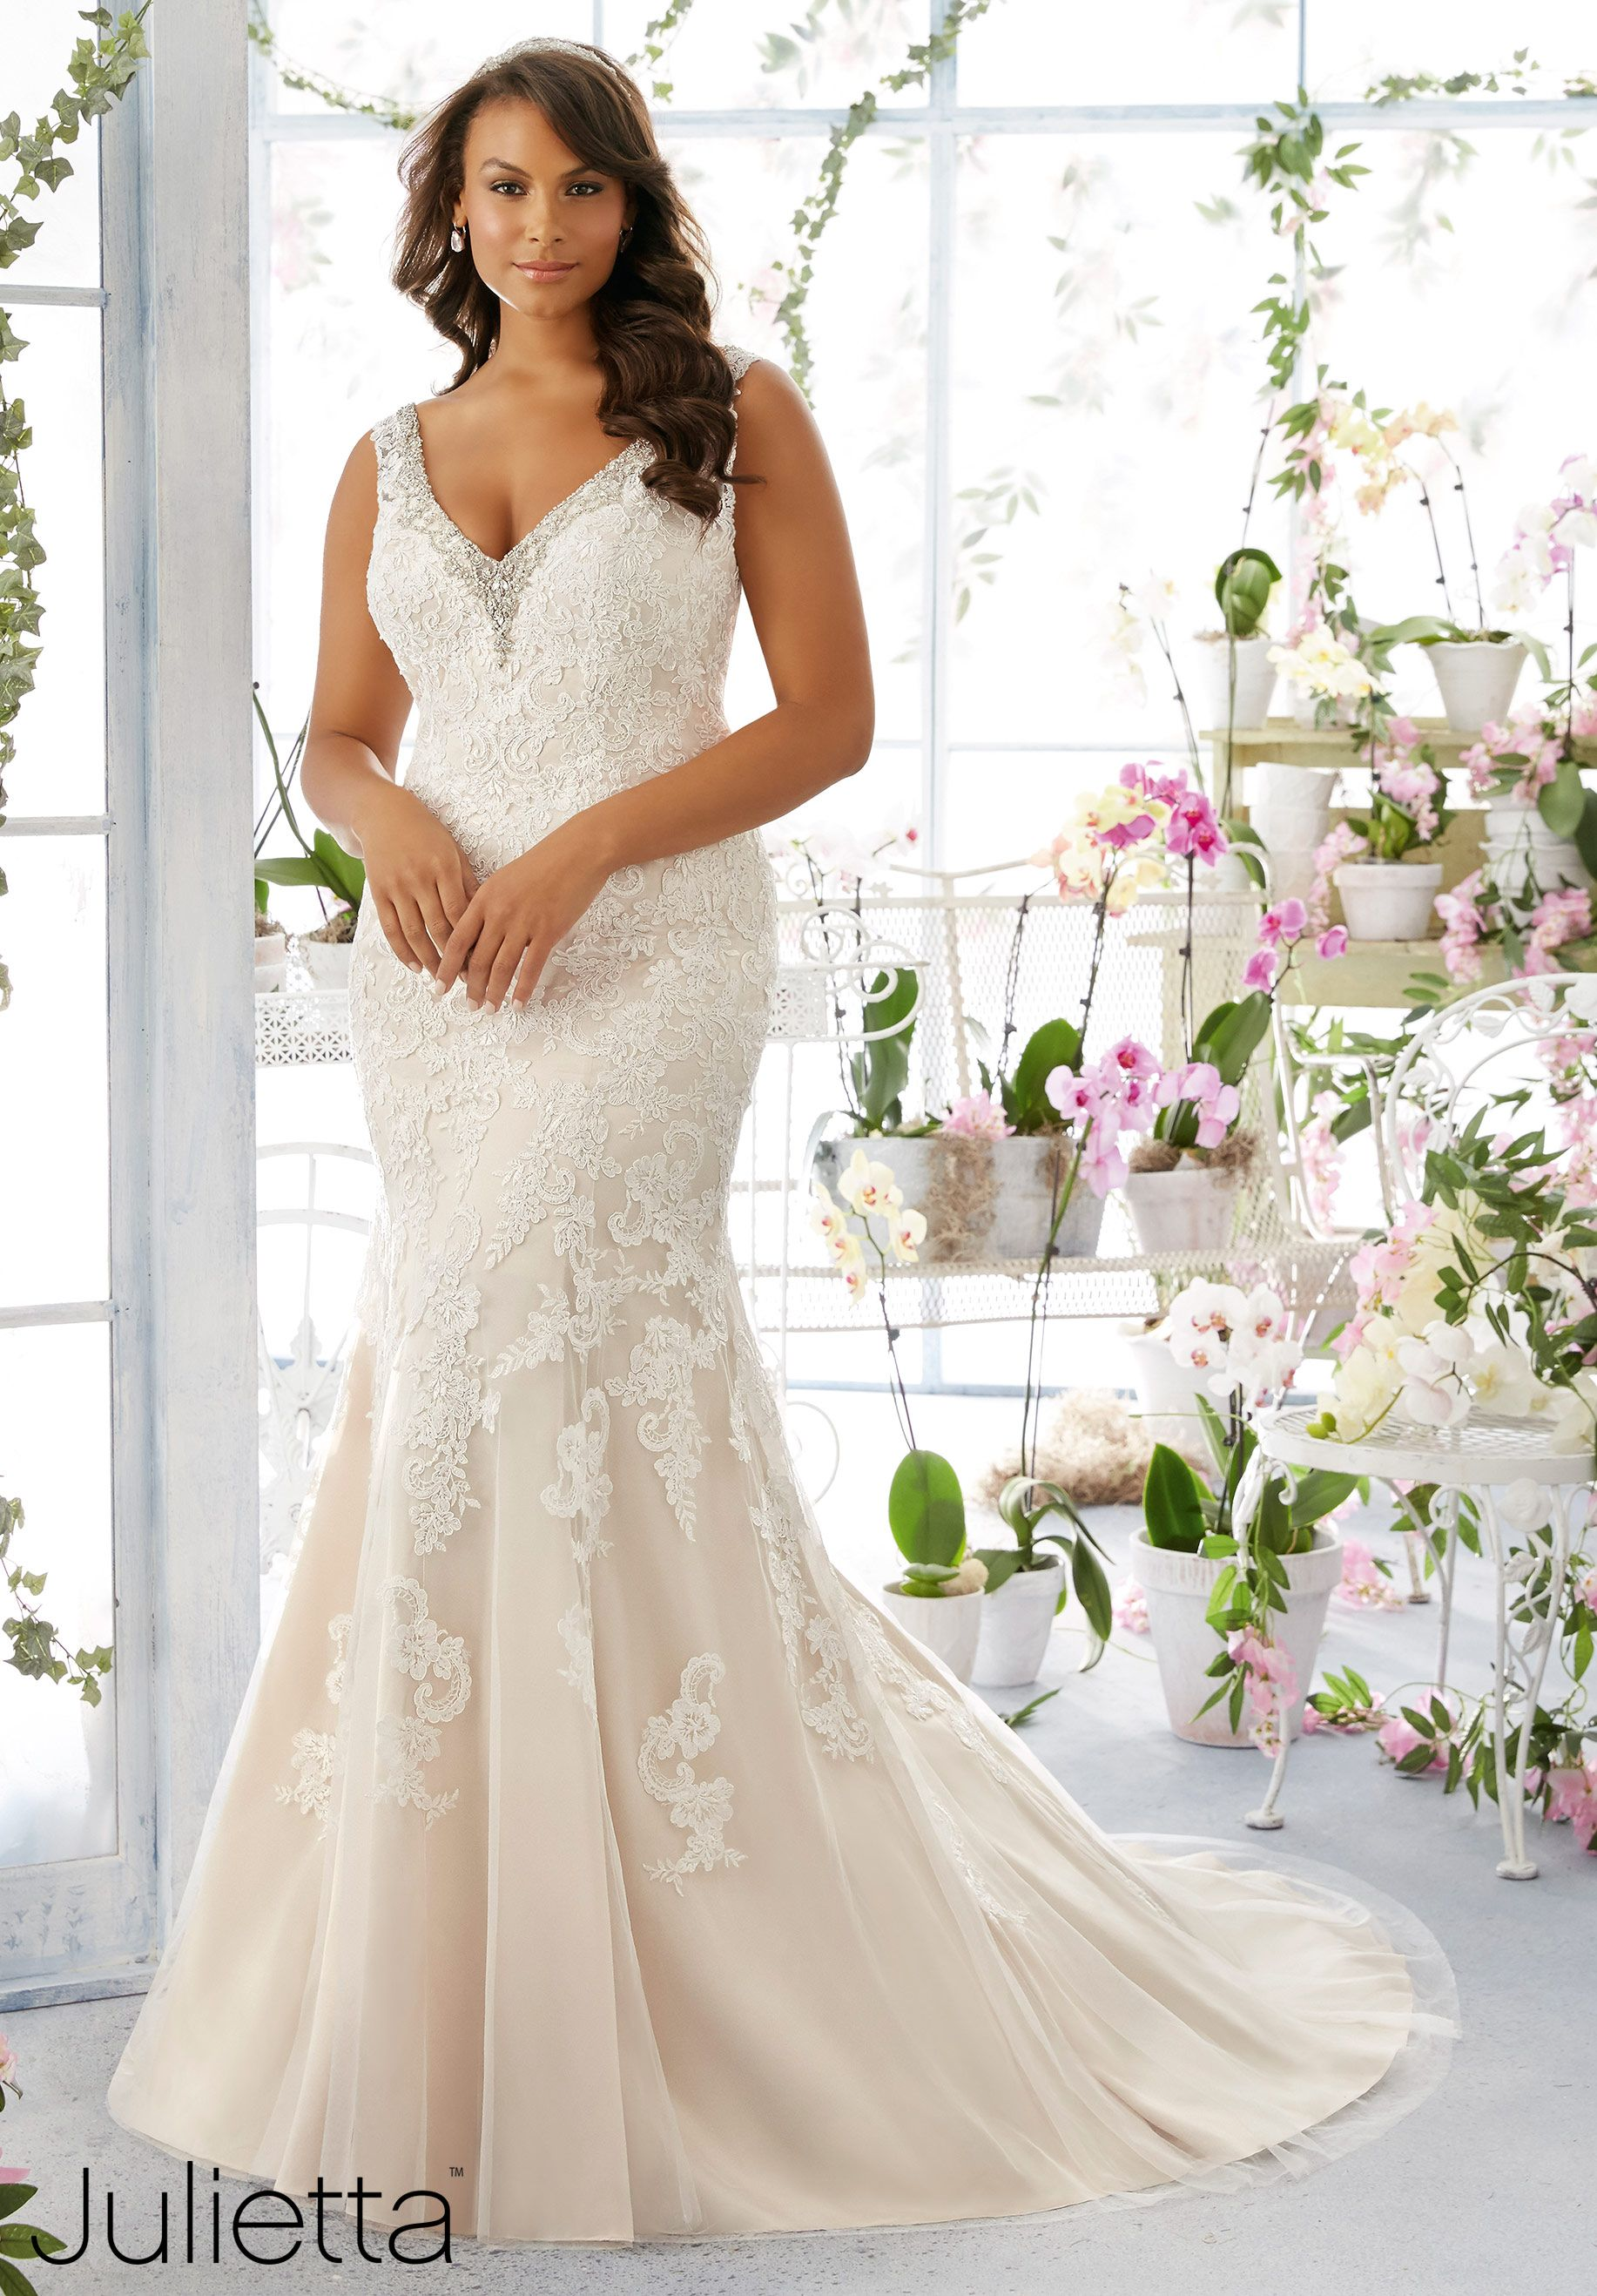 New Julietta Collection By Mori Lee